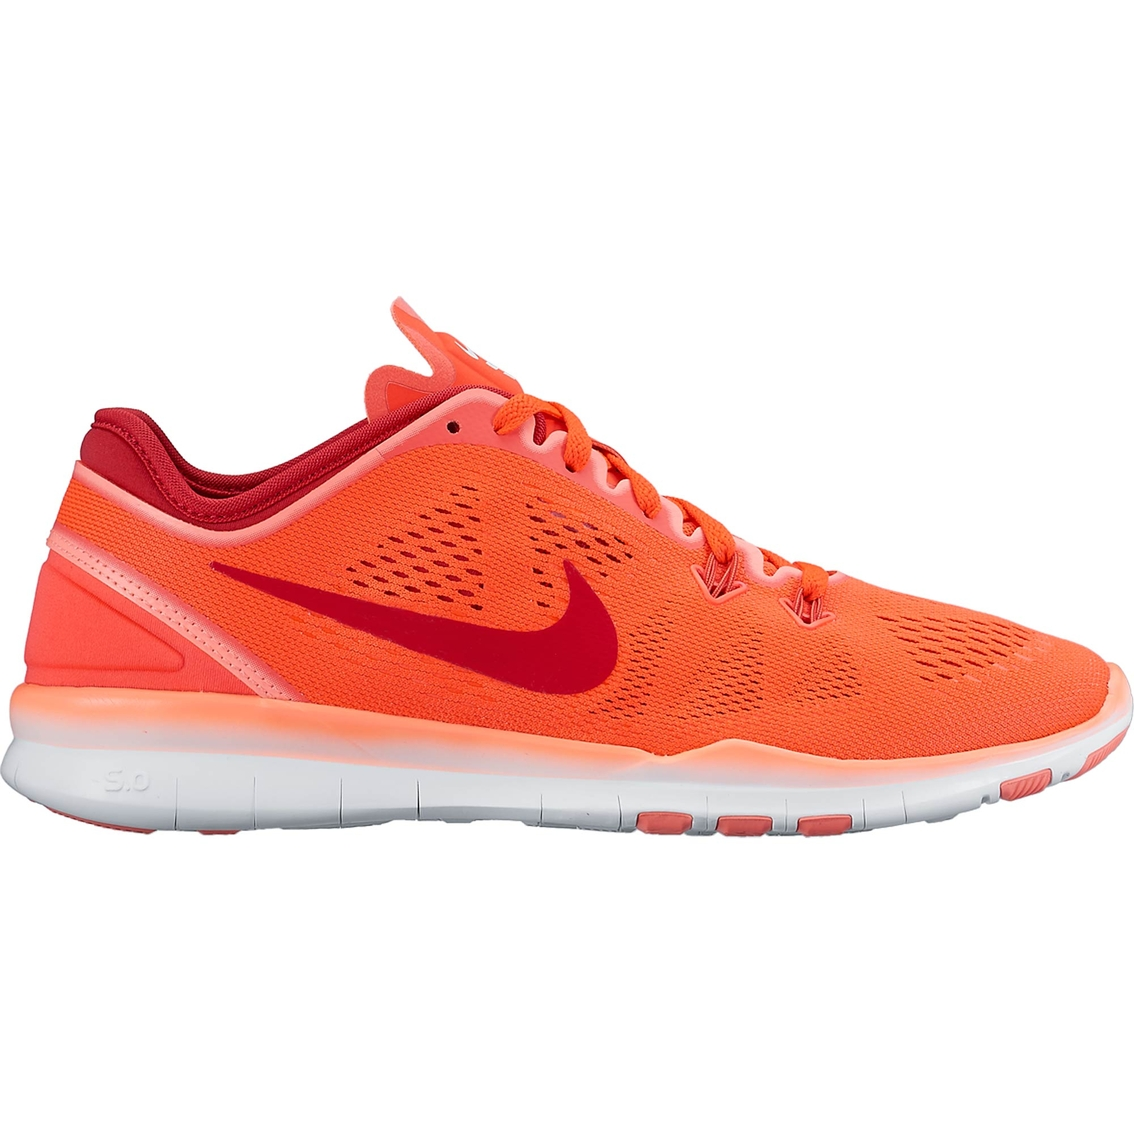 fada48f1bfd3 Nike Women s Free 5.0 Tr Fit 5 Training Shoes